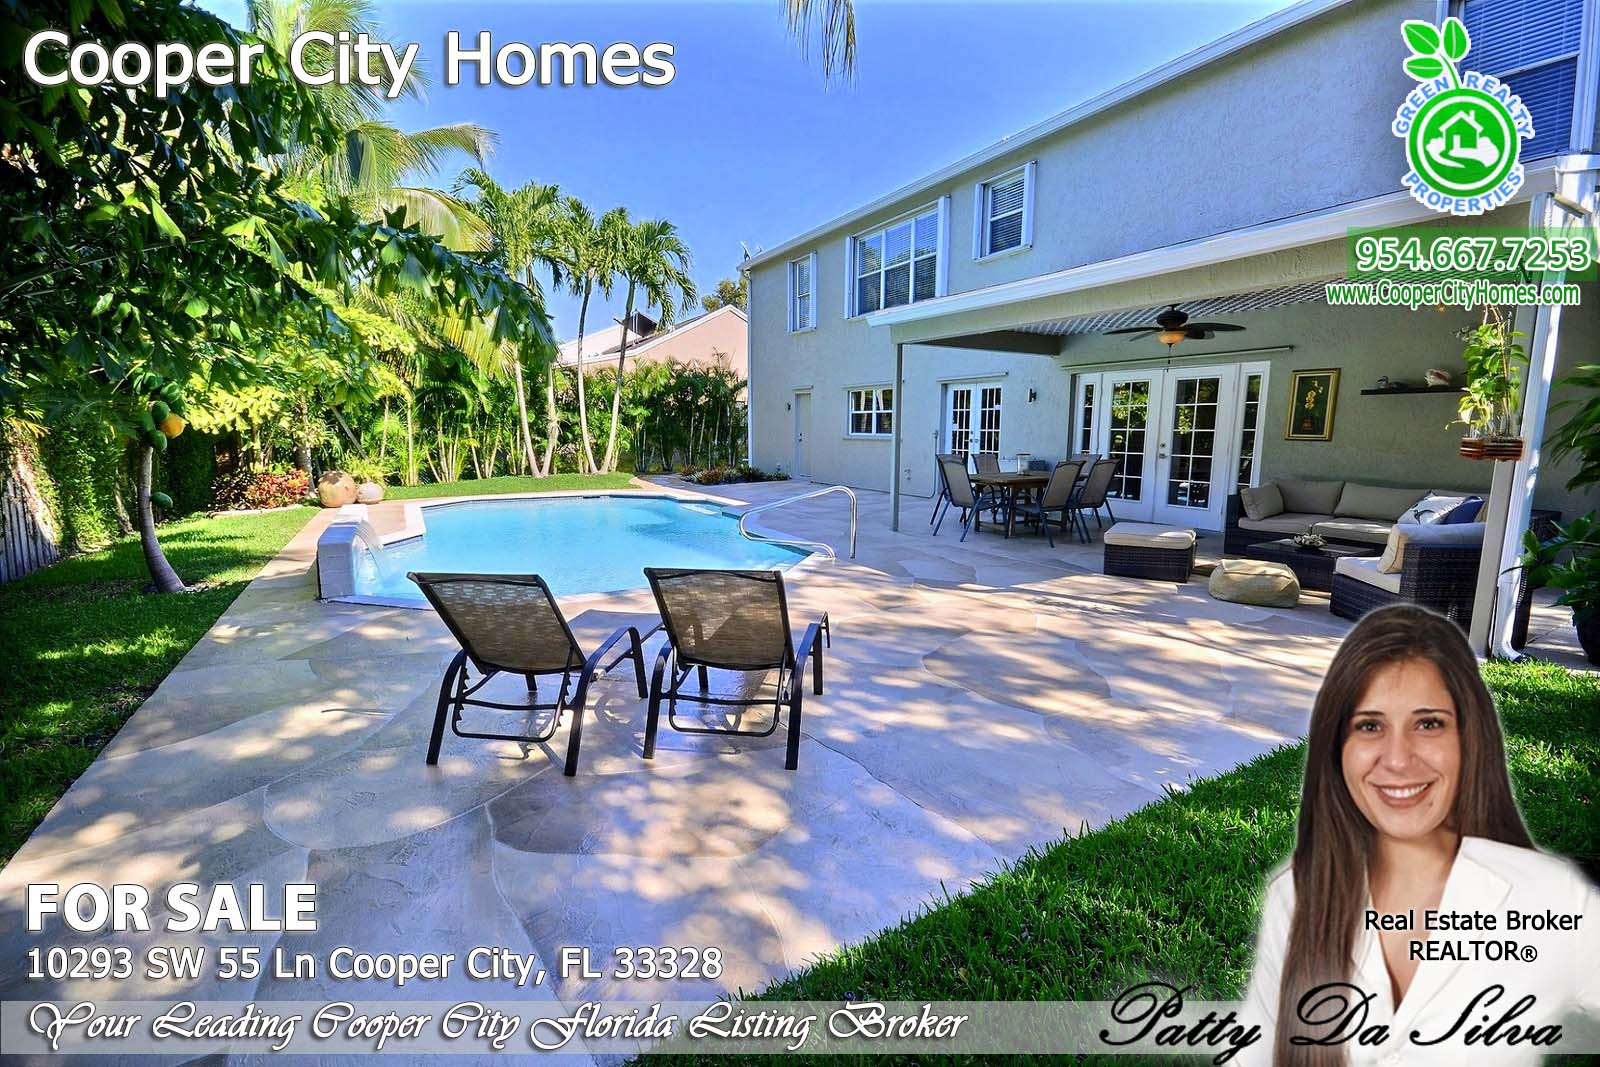 Cooper City Real Estate Broker Patty Da Silva Green Realty Properties (7)